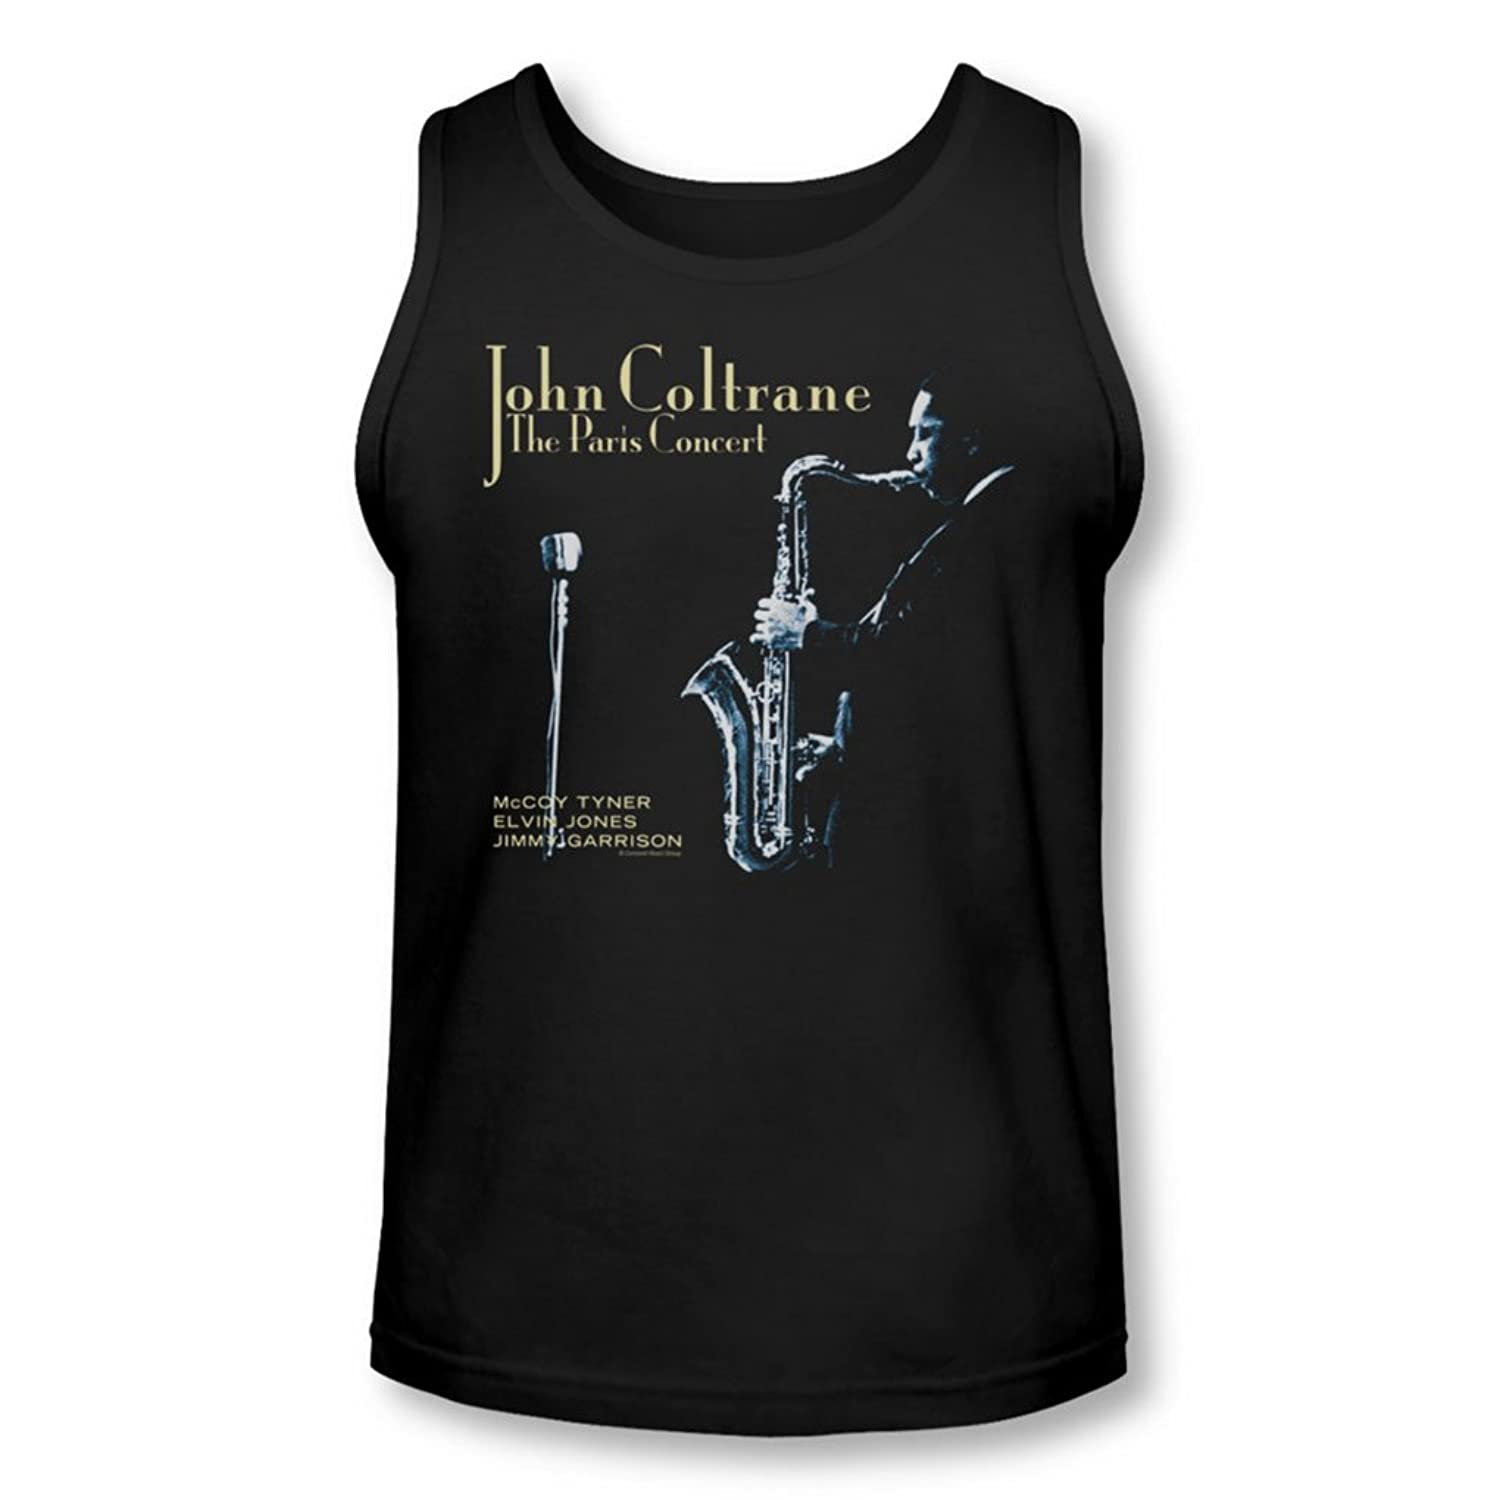 Concord Music - Mens Paris Coltrane Tank-Top